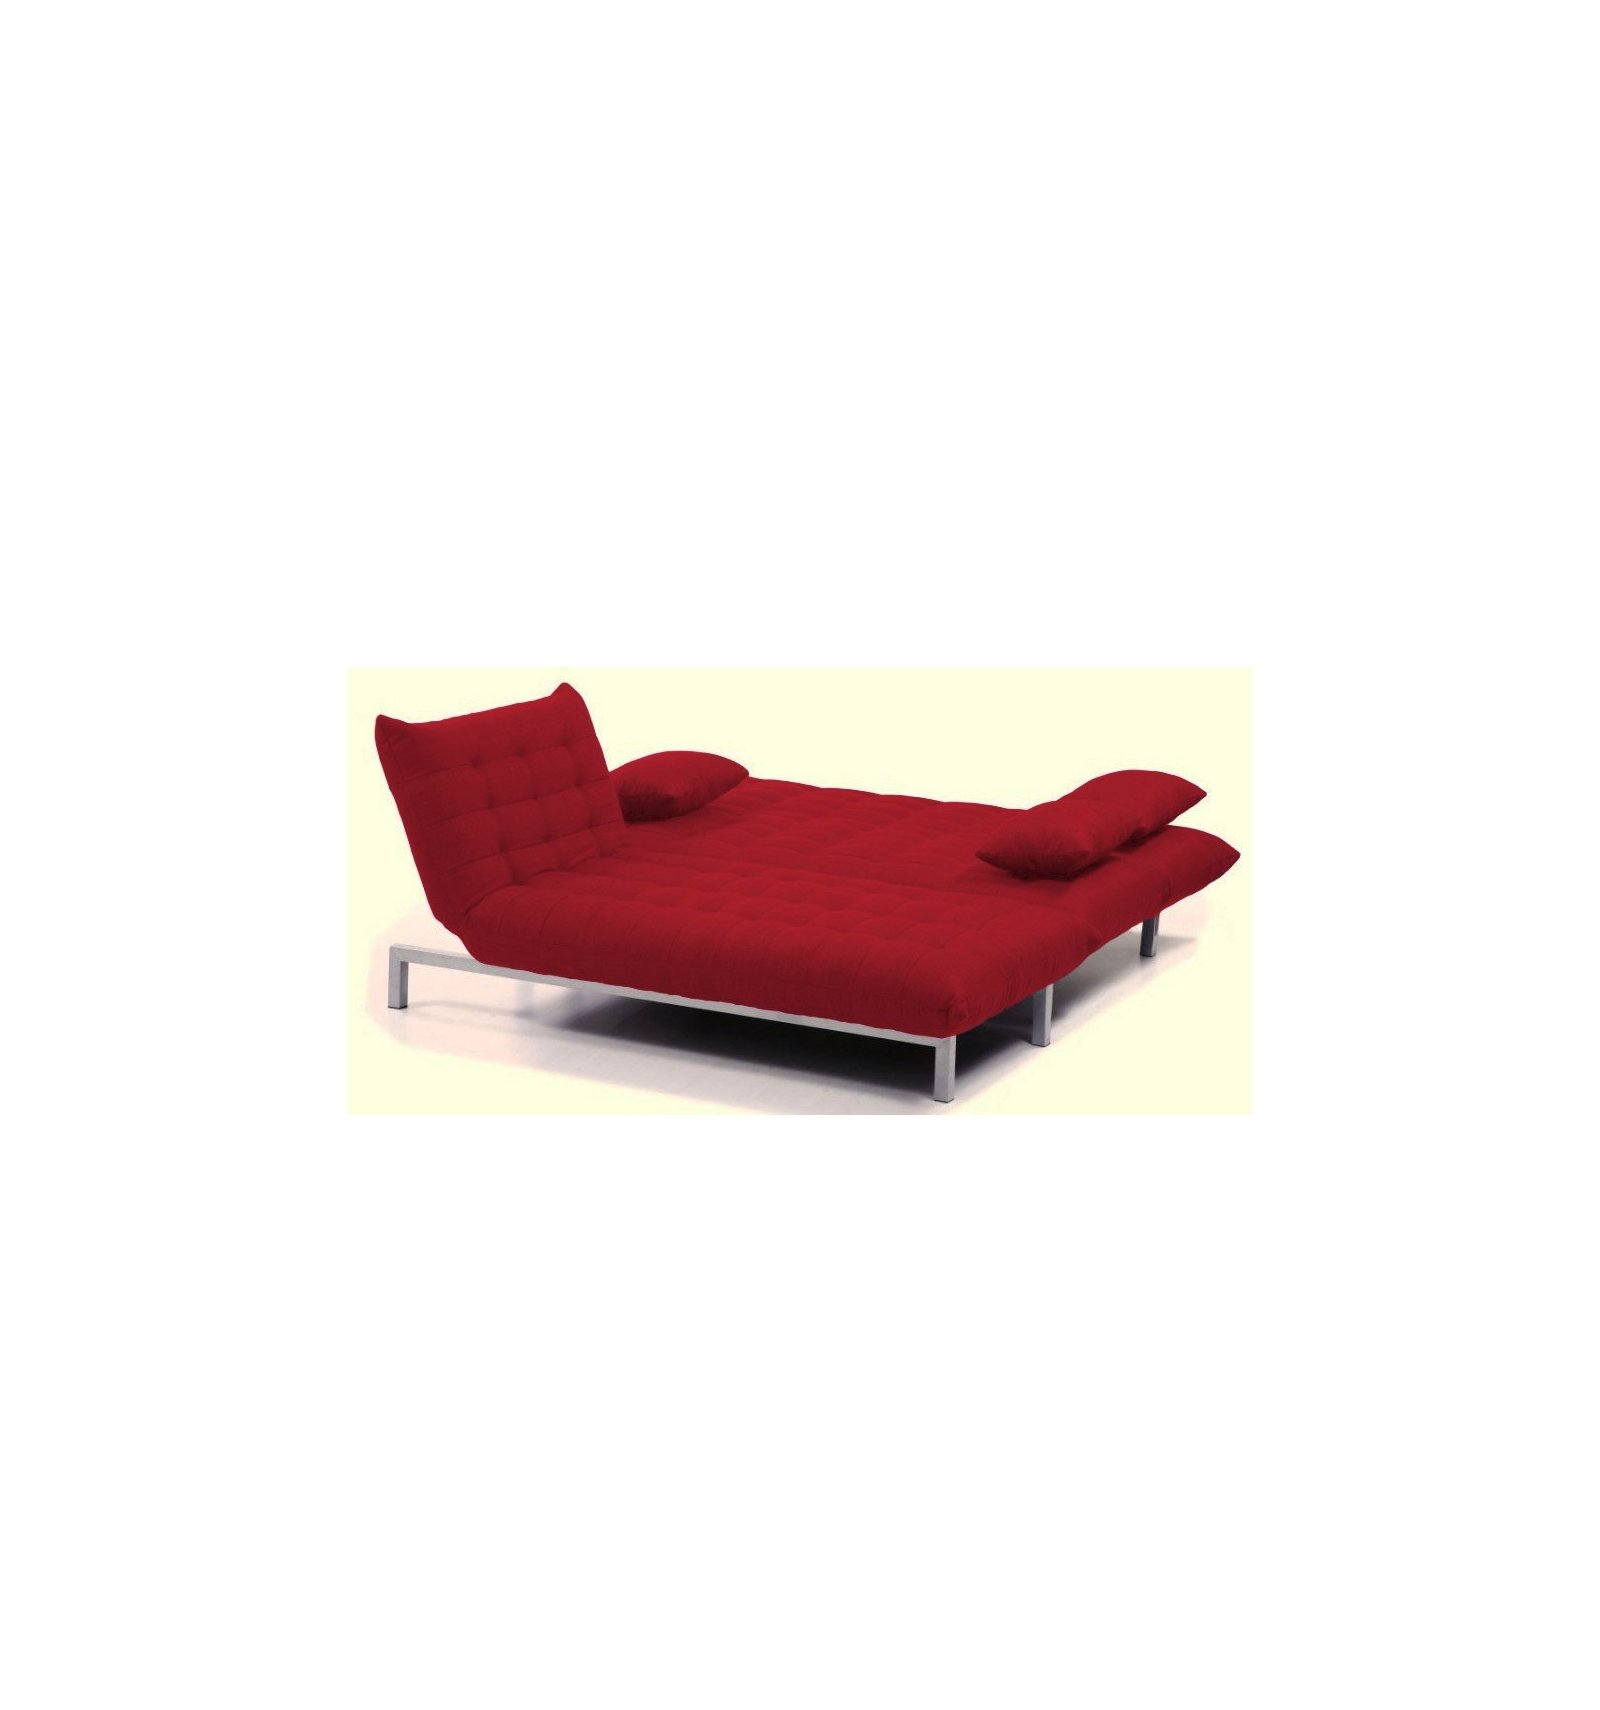 Stunning chaise longue letto photos amazing house design for Divano letto chaise longue